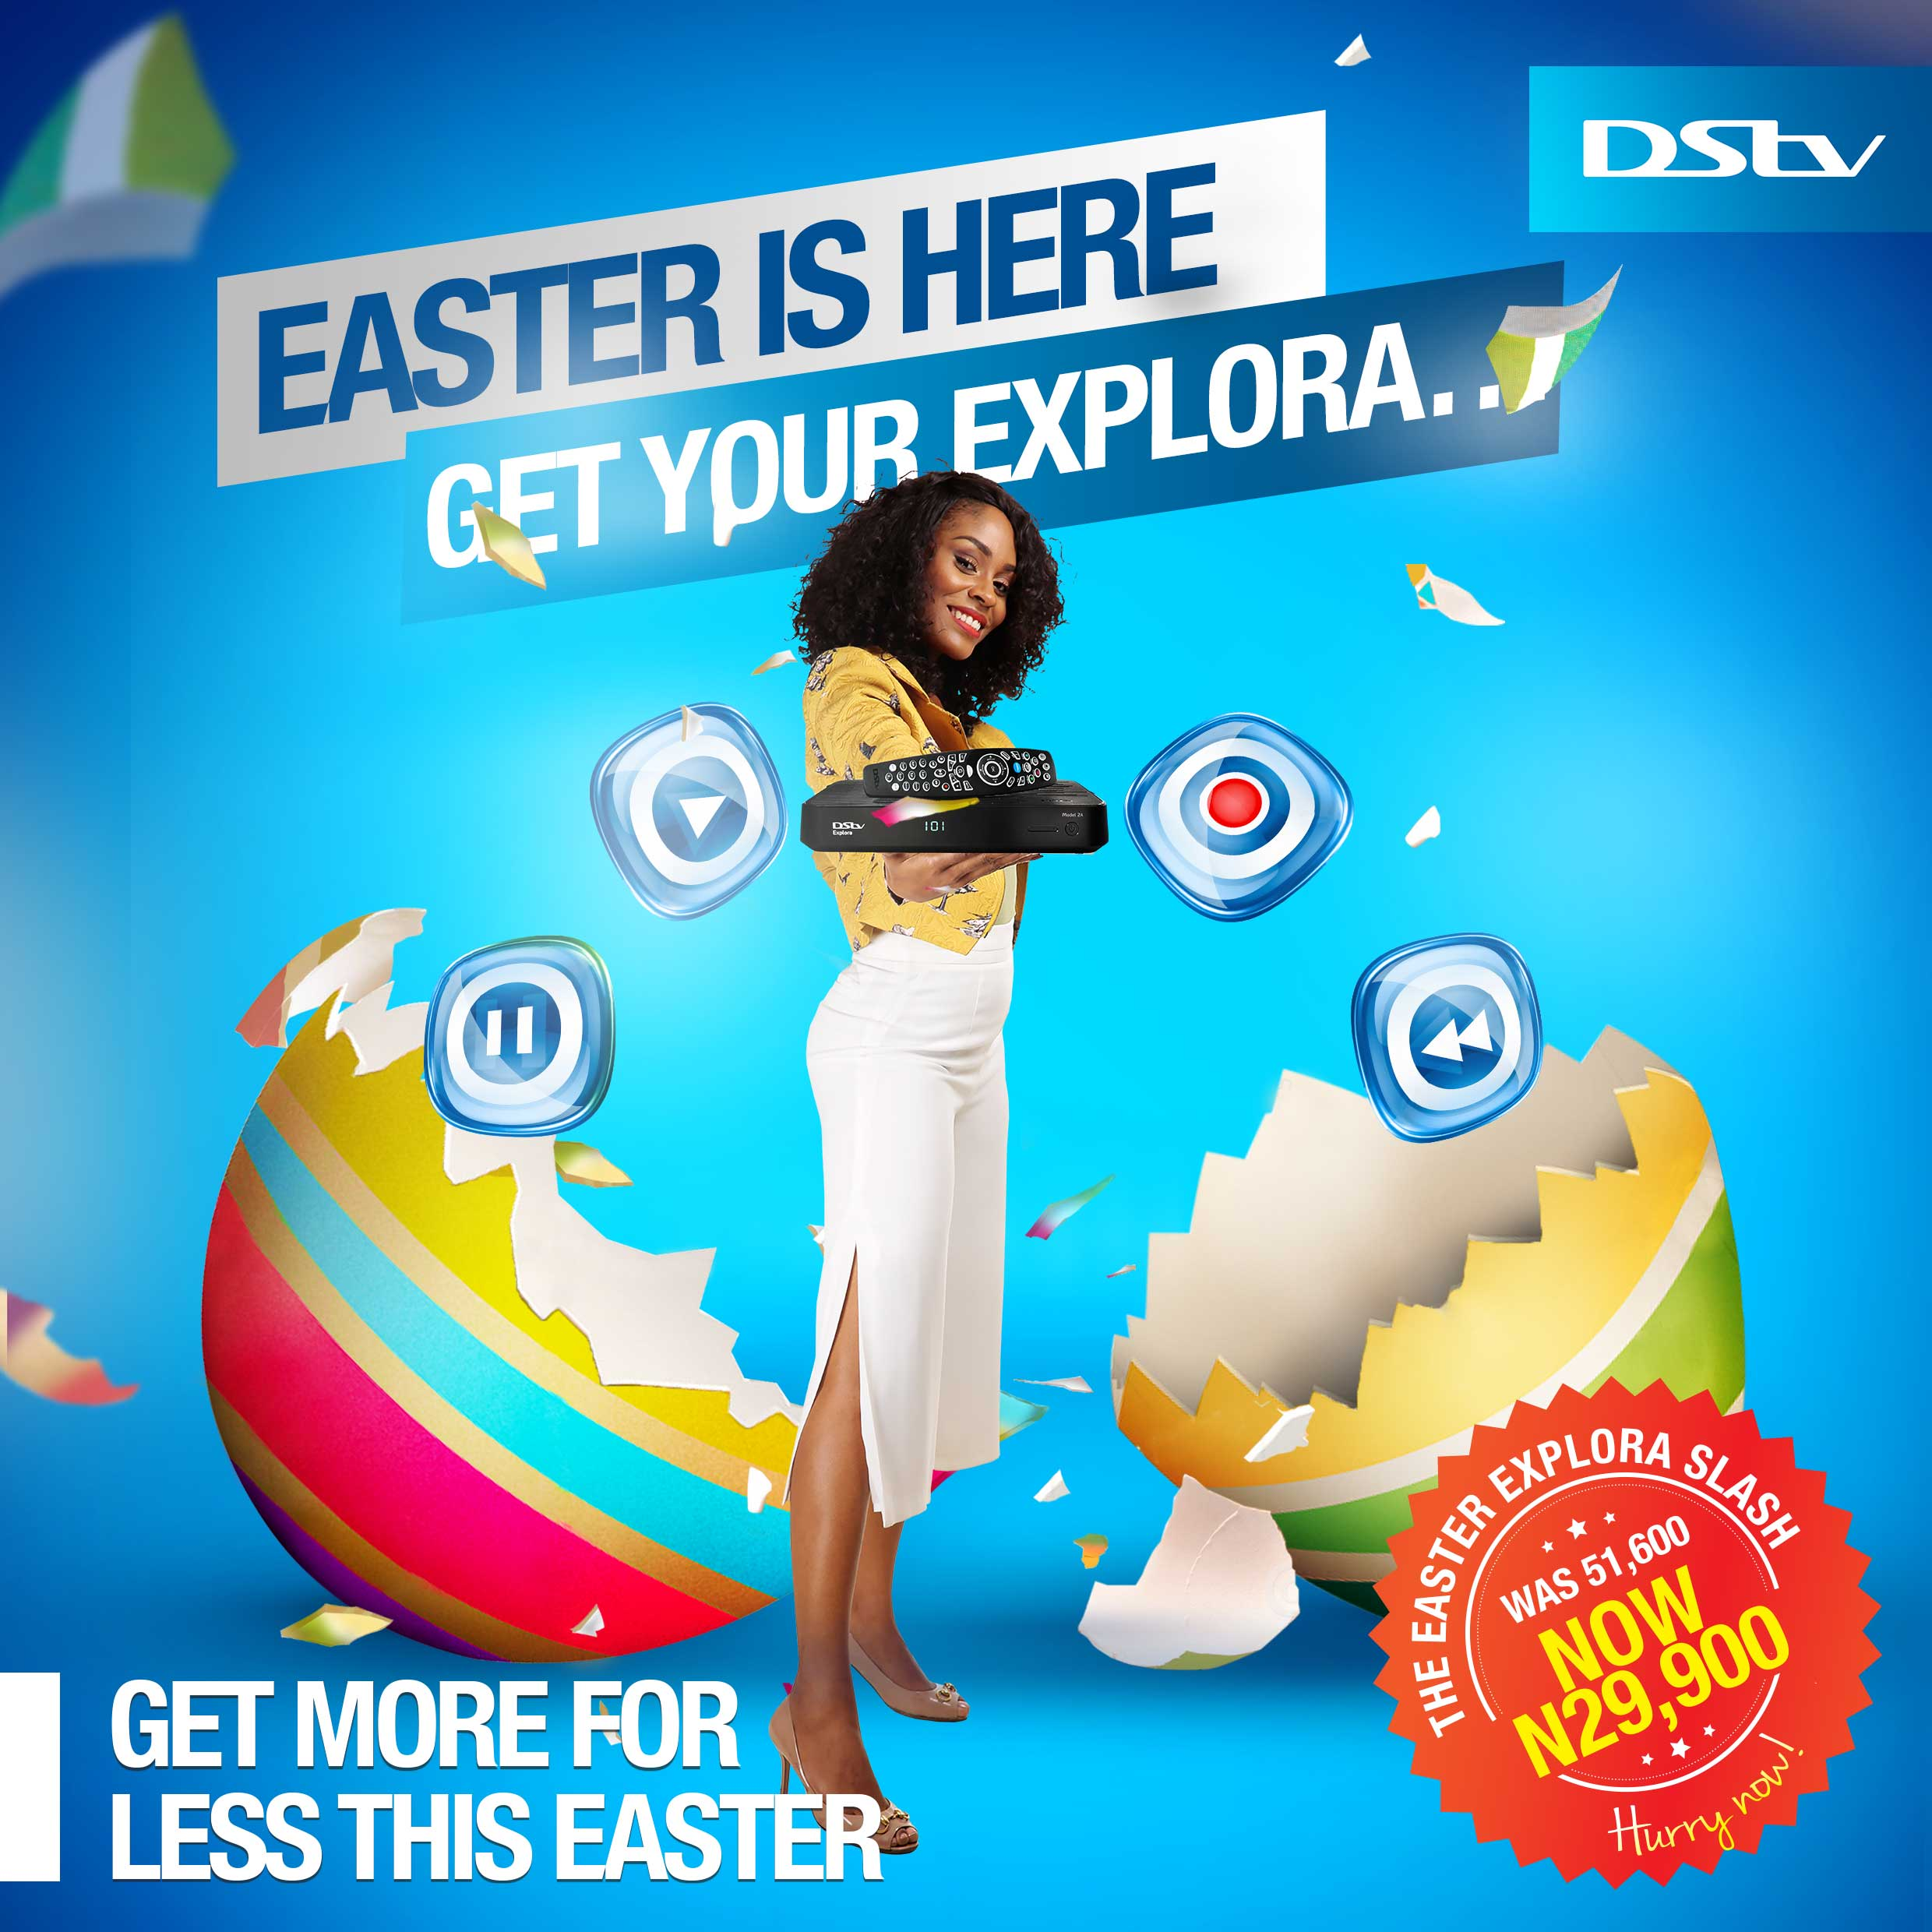 DStv Is Making Easter Holiday More Exciting!